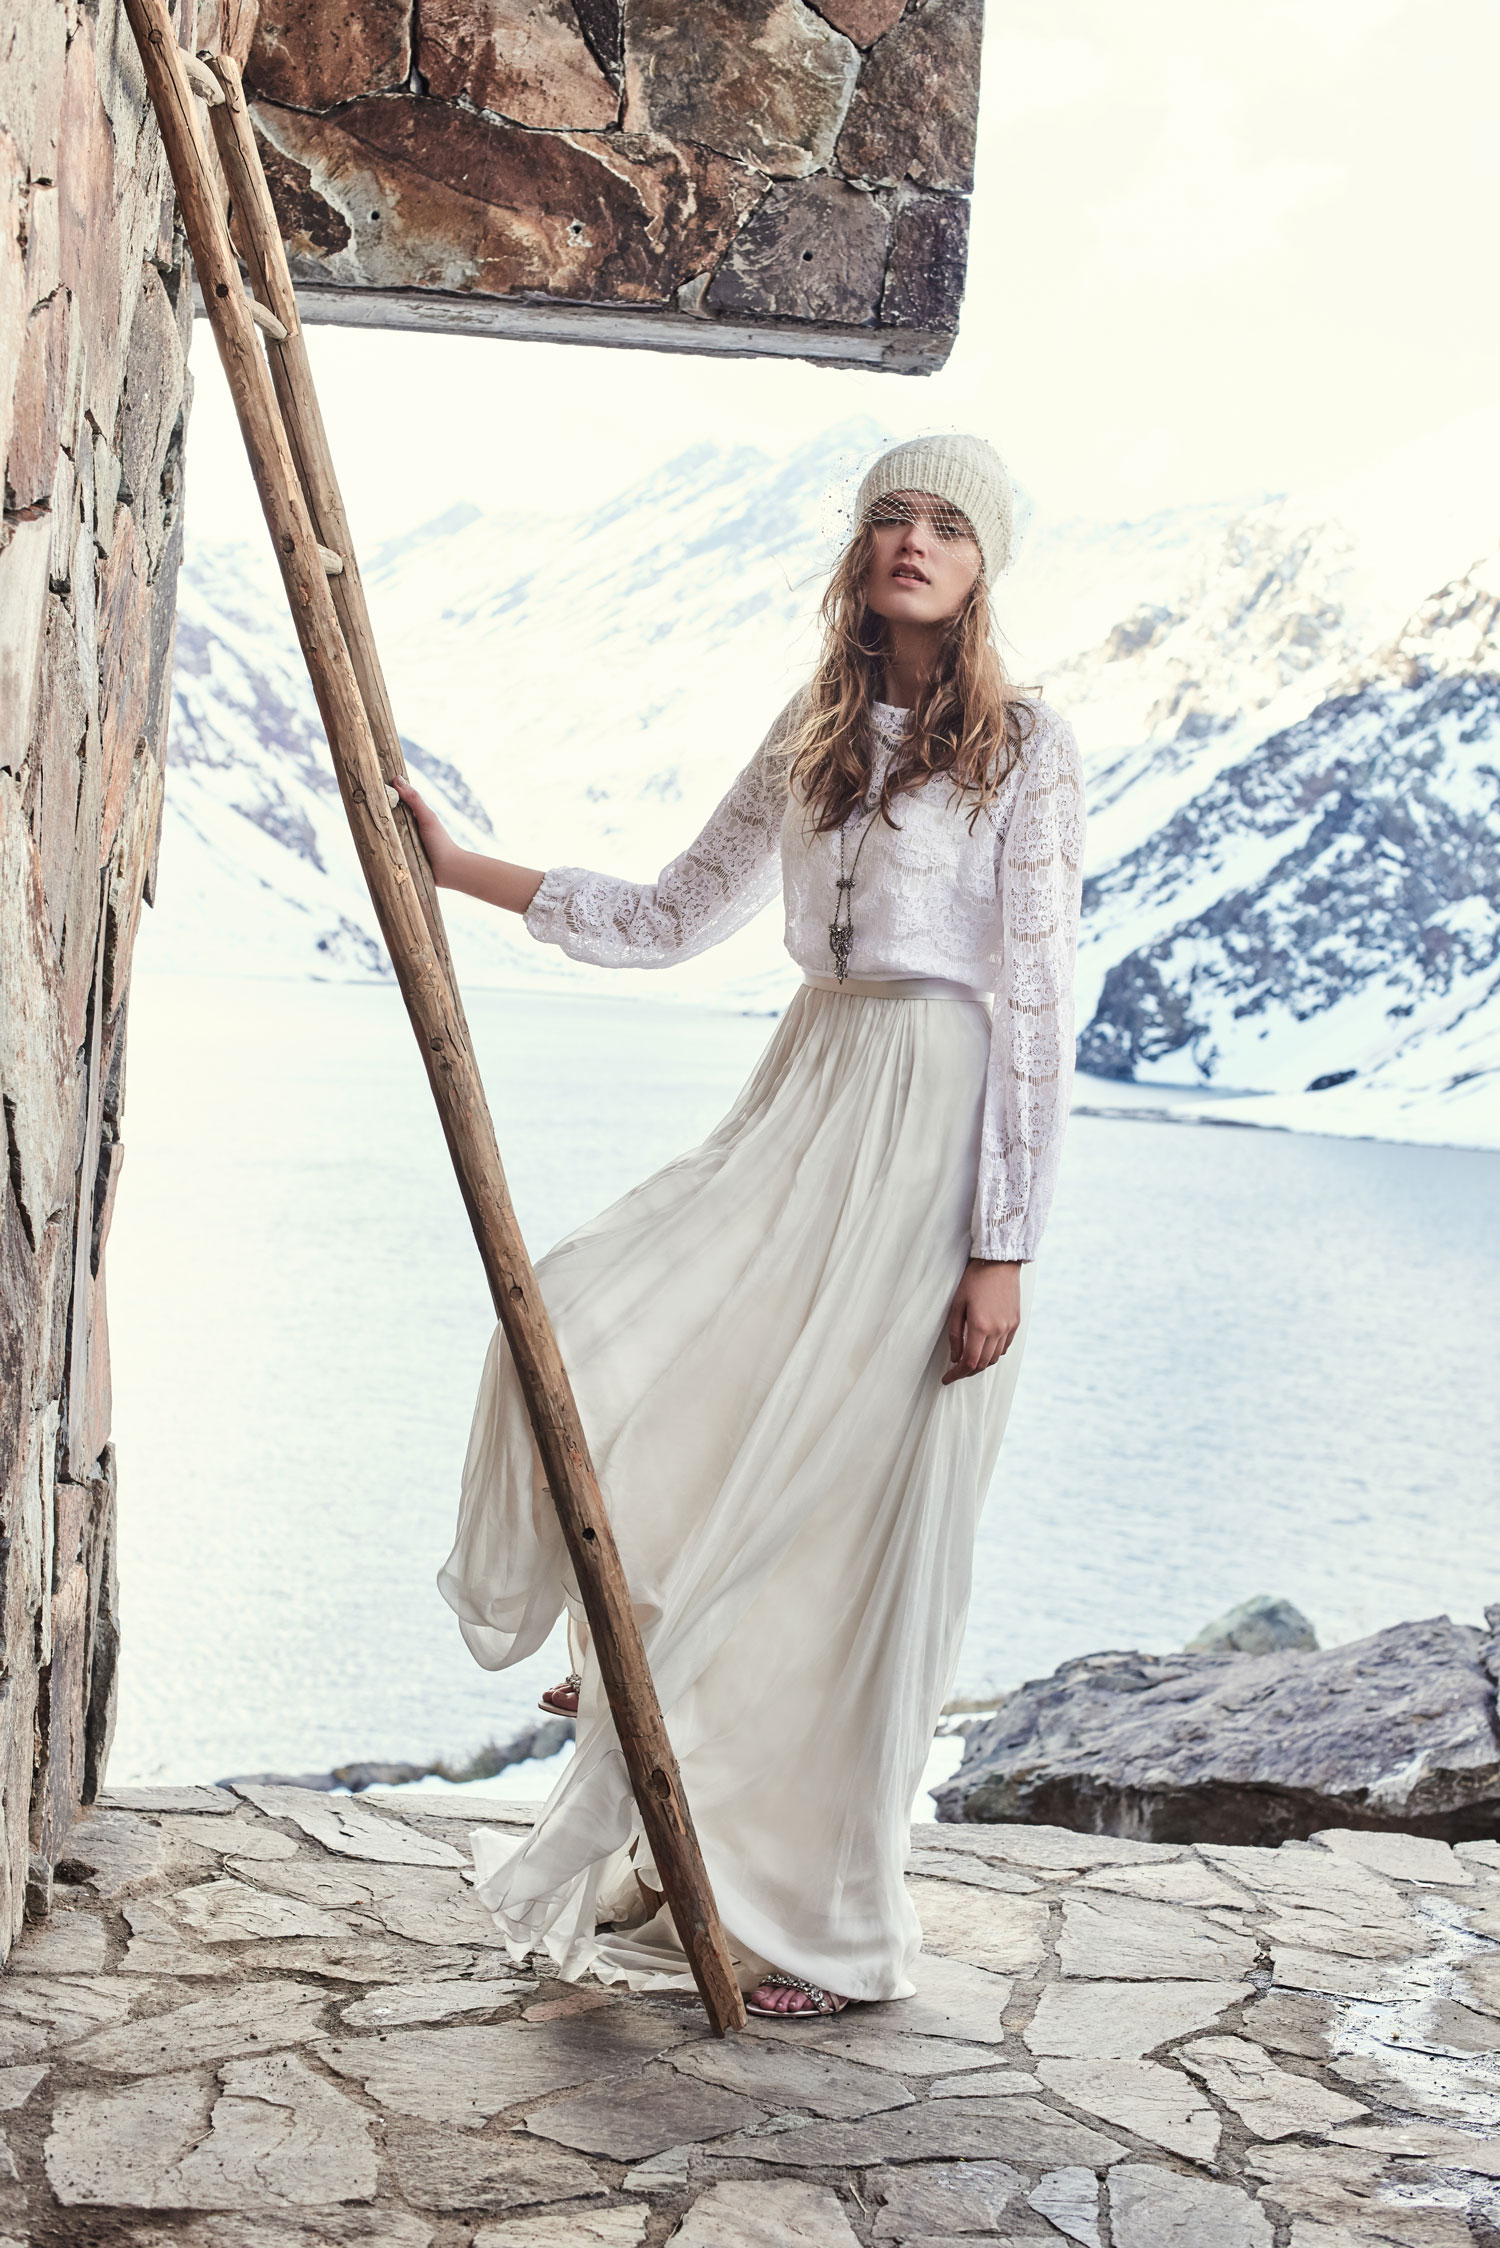 BHLDN Maureen lace top Delia skirt Cashmere Veiled Beanie hat and Paramount necklace